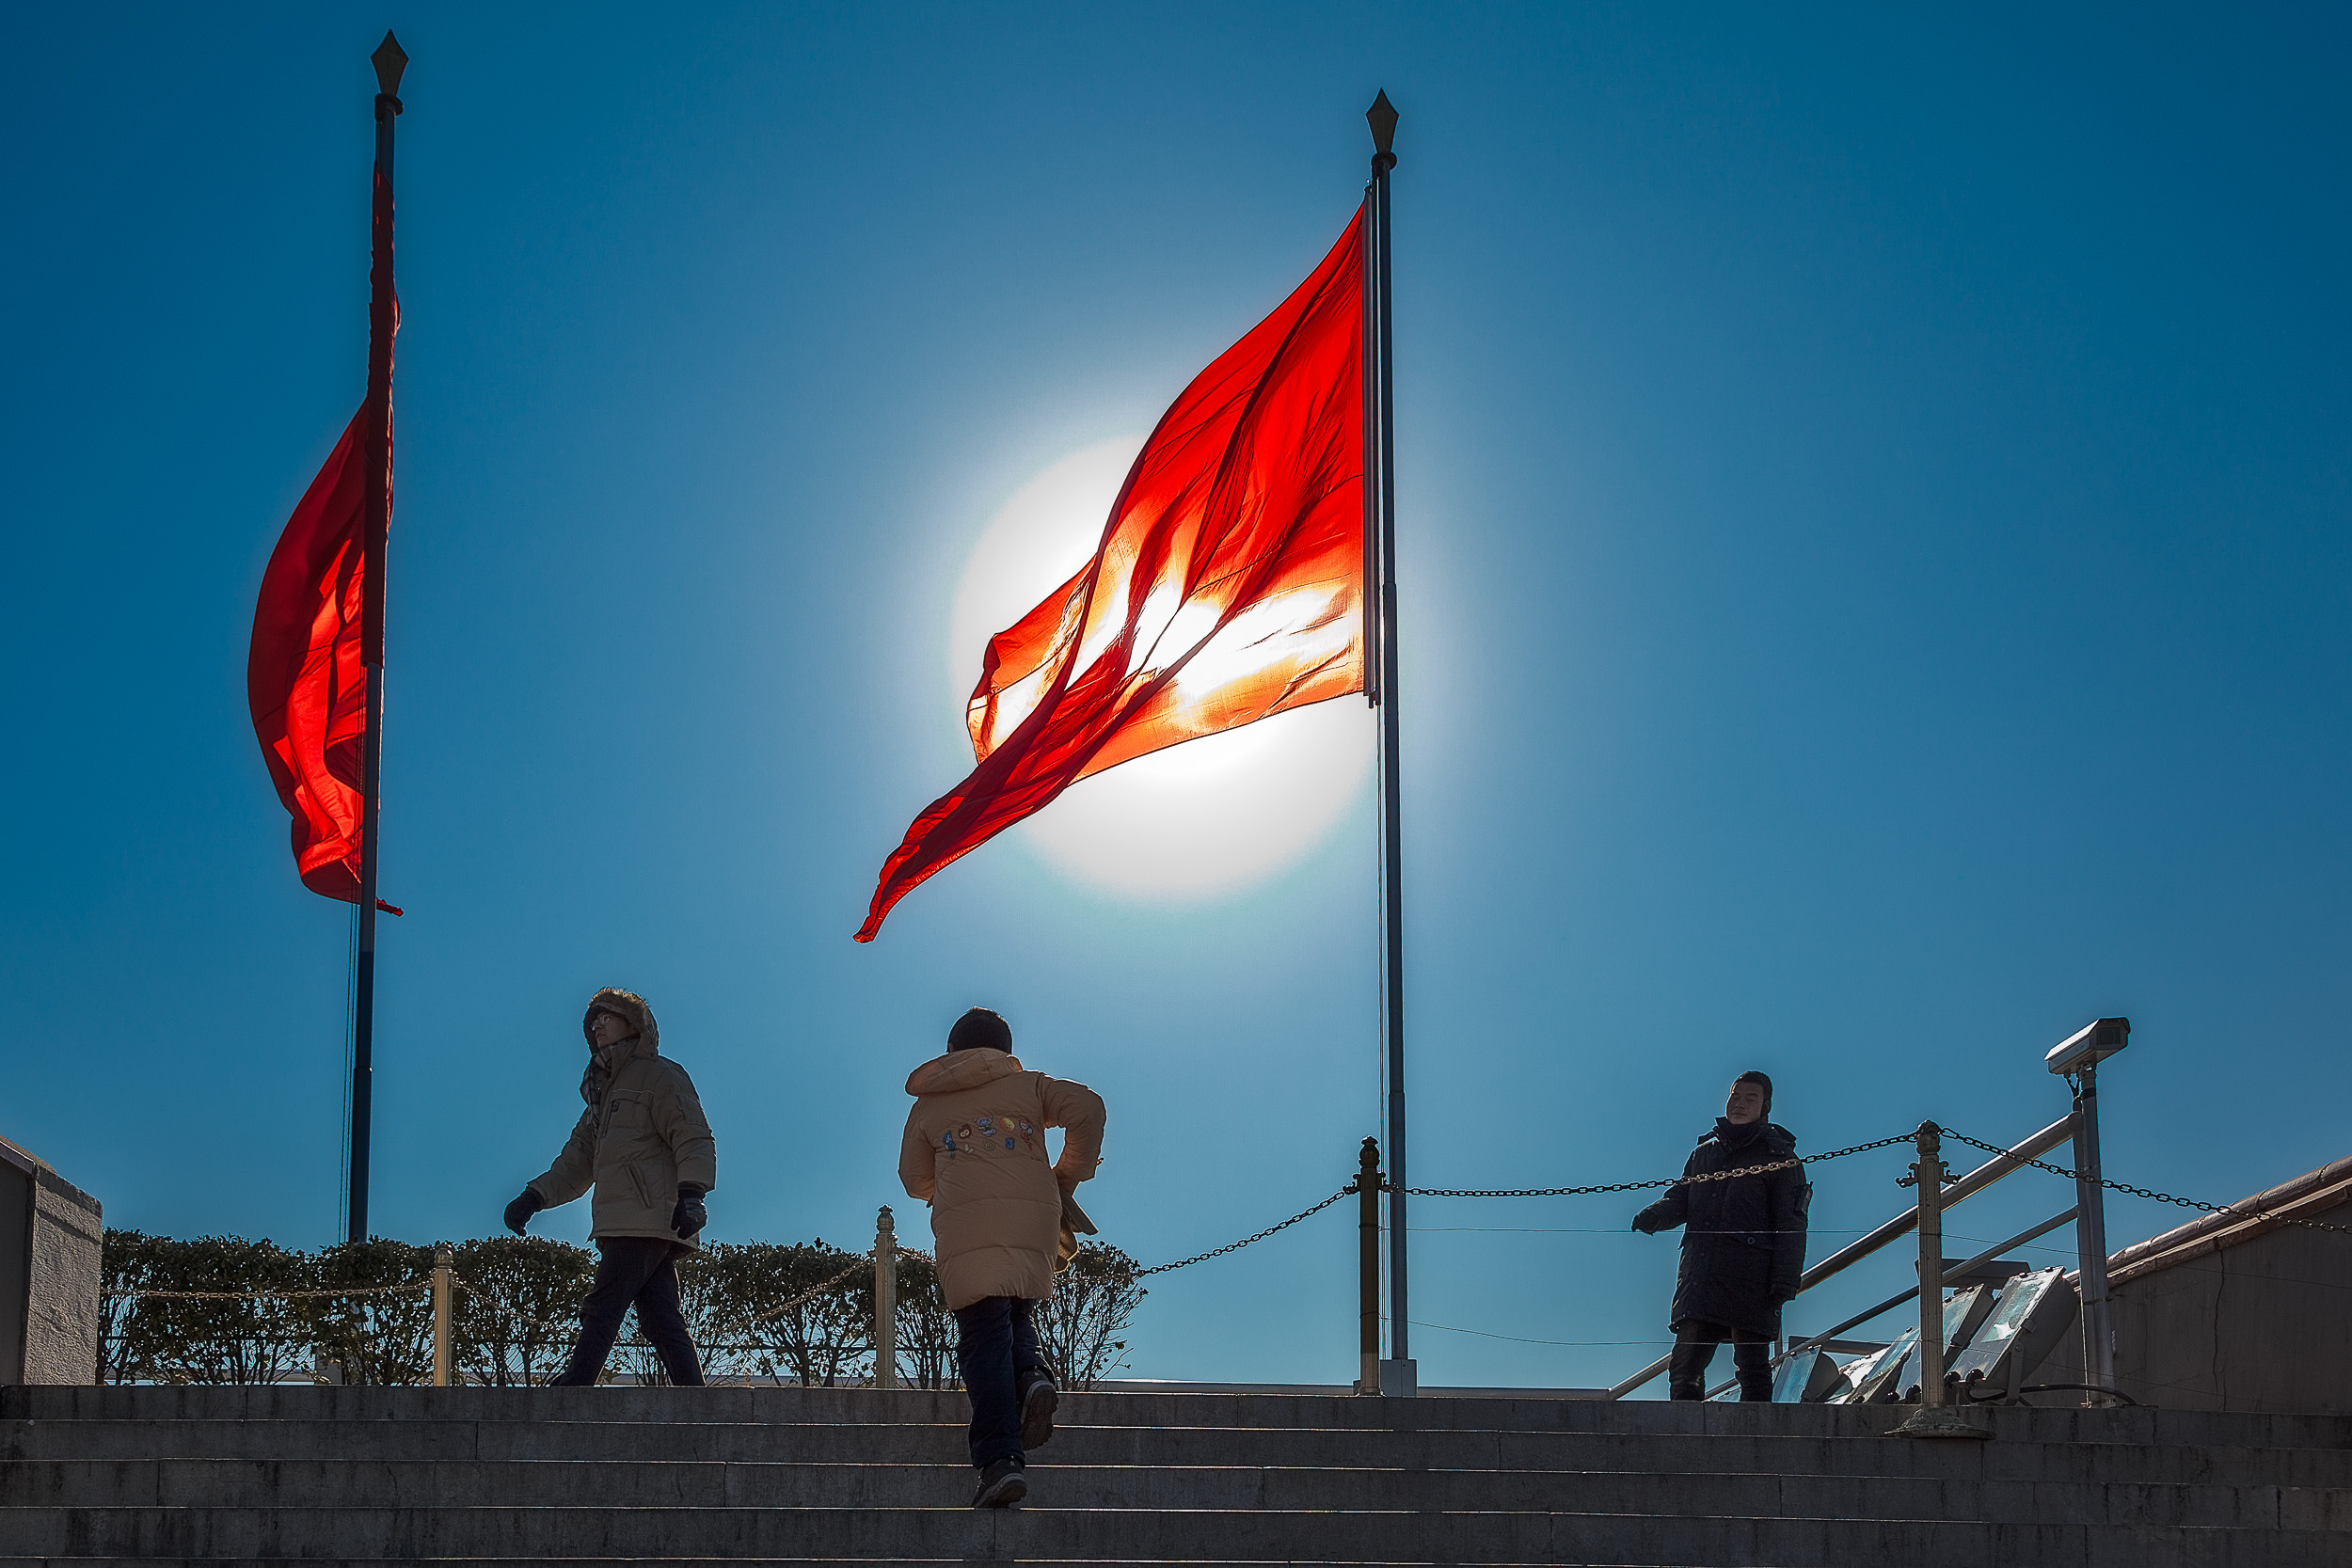 The red    communist China flag    flies, above    Tiananmen Square   , from the ramparts of the    Forbidden City in Beijing, China   .